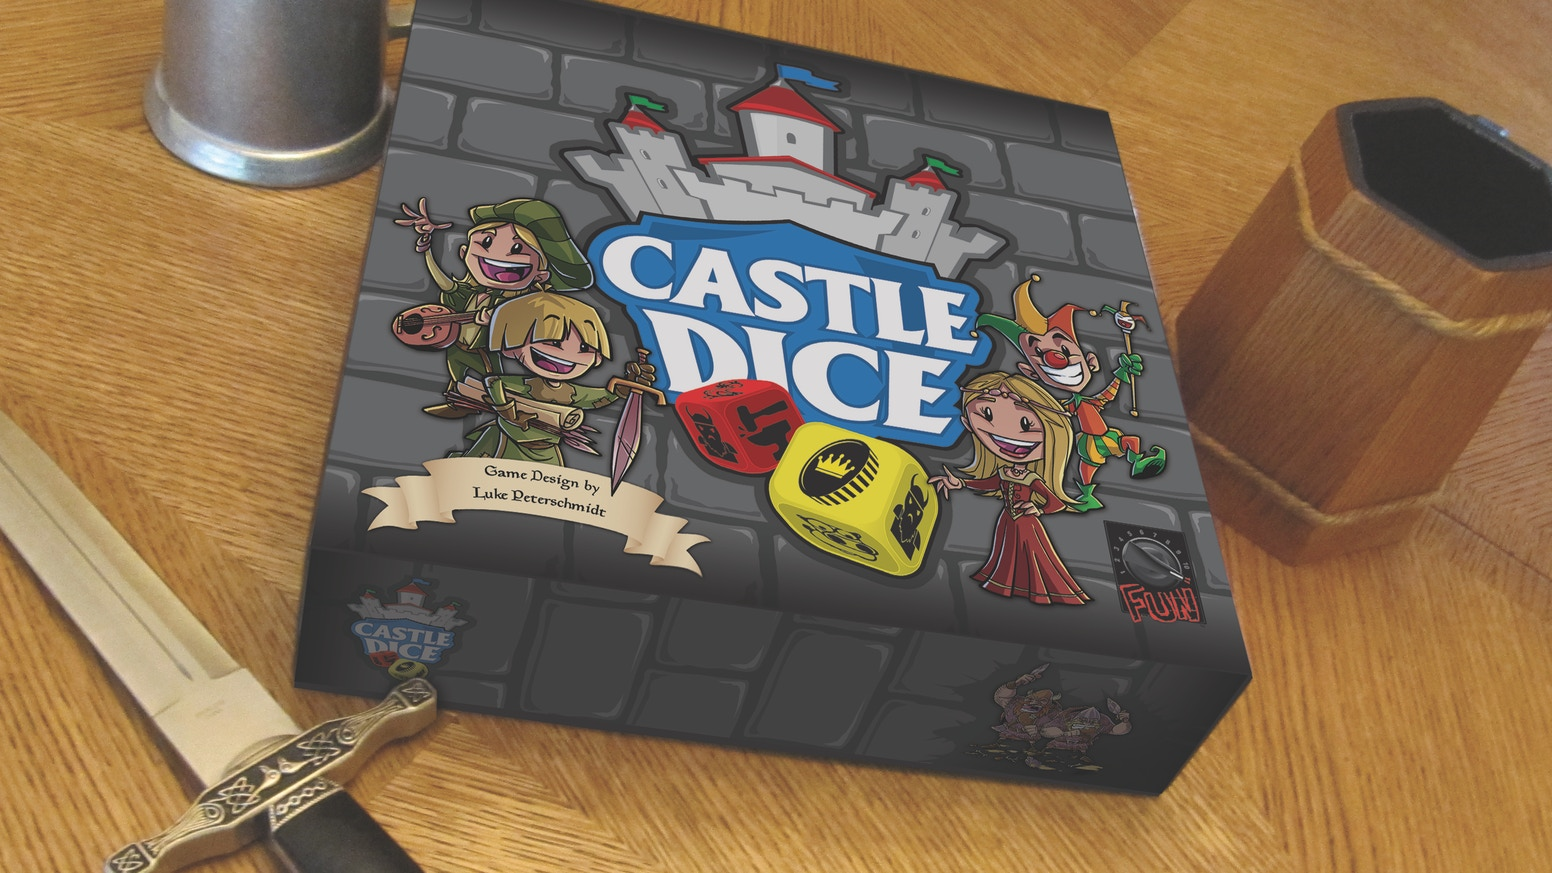 Roll tons of custom molded dice and build castles in this massive Euro-style game featuring light worker placement and dice drafting.